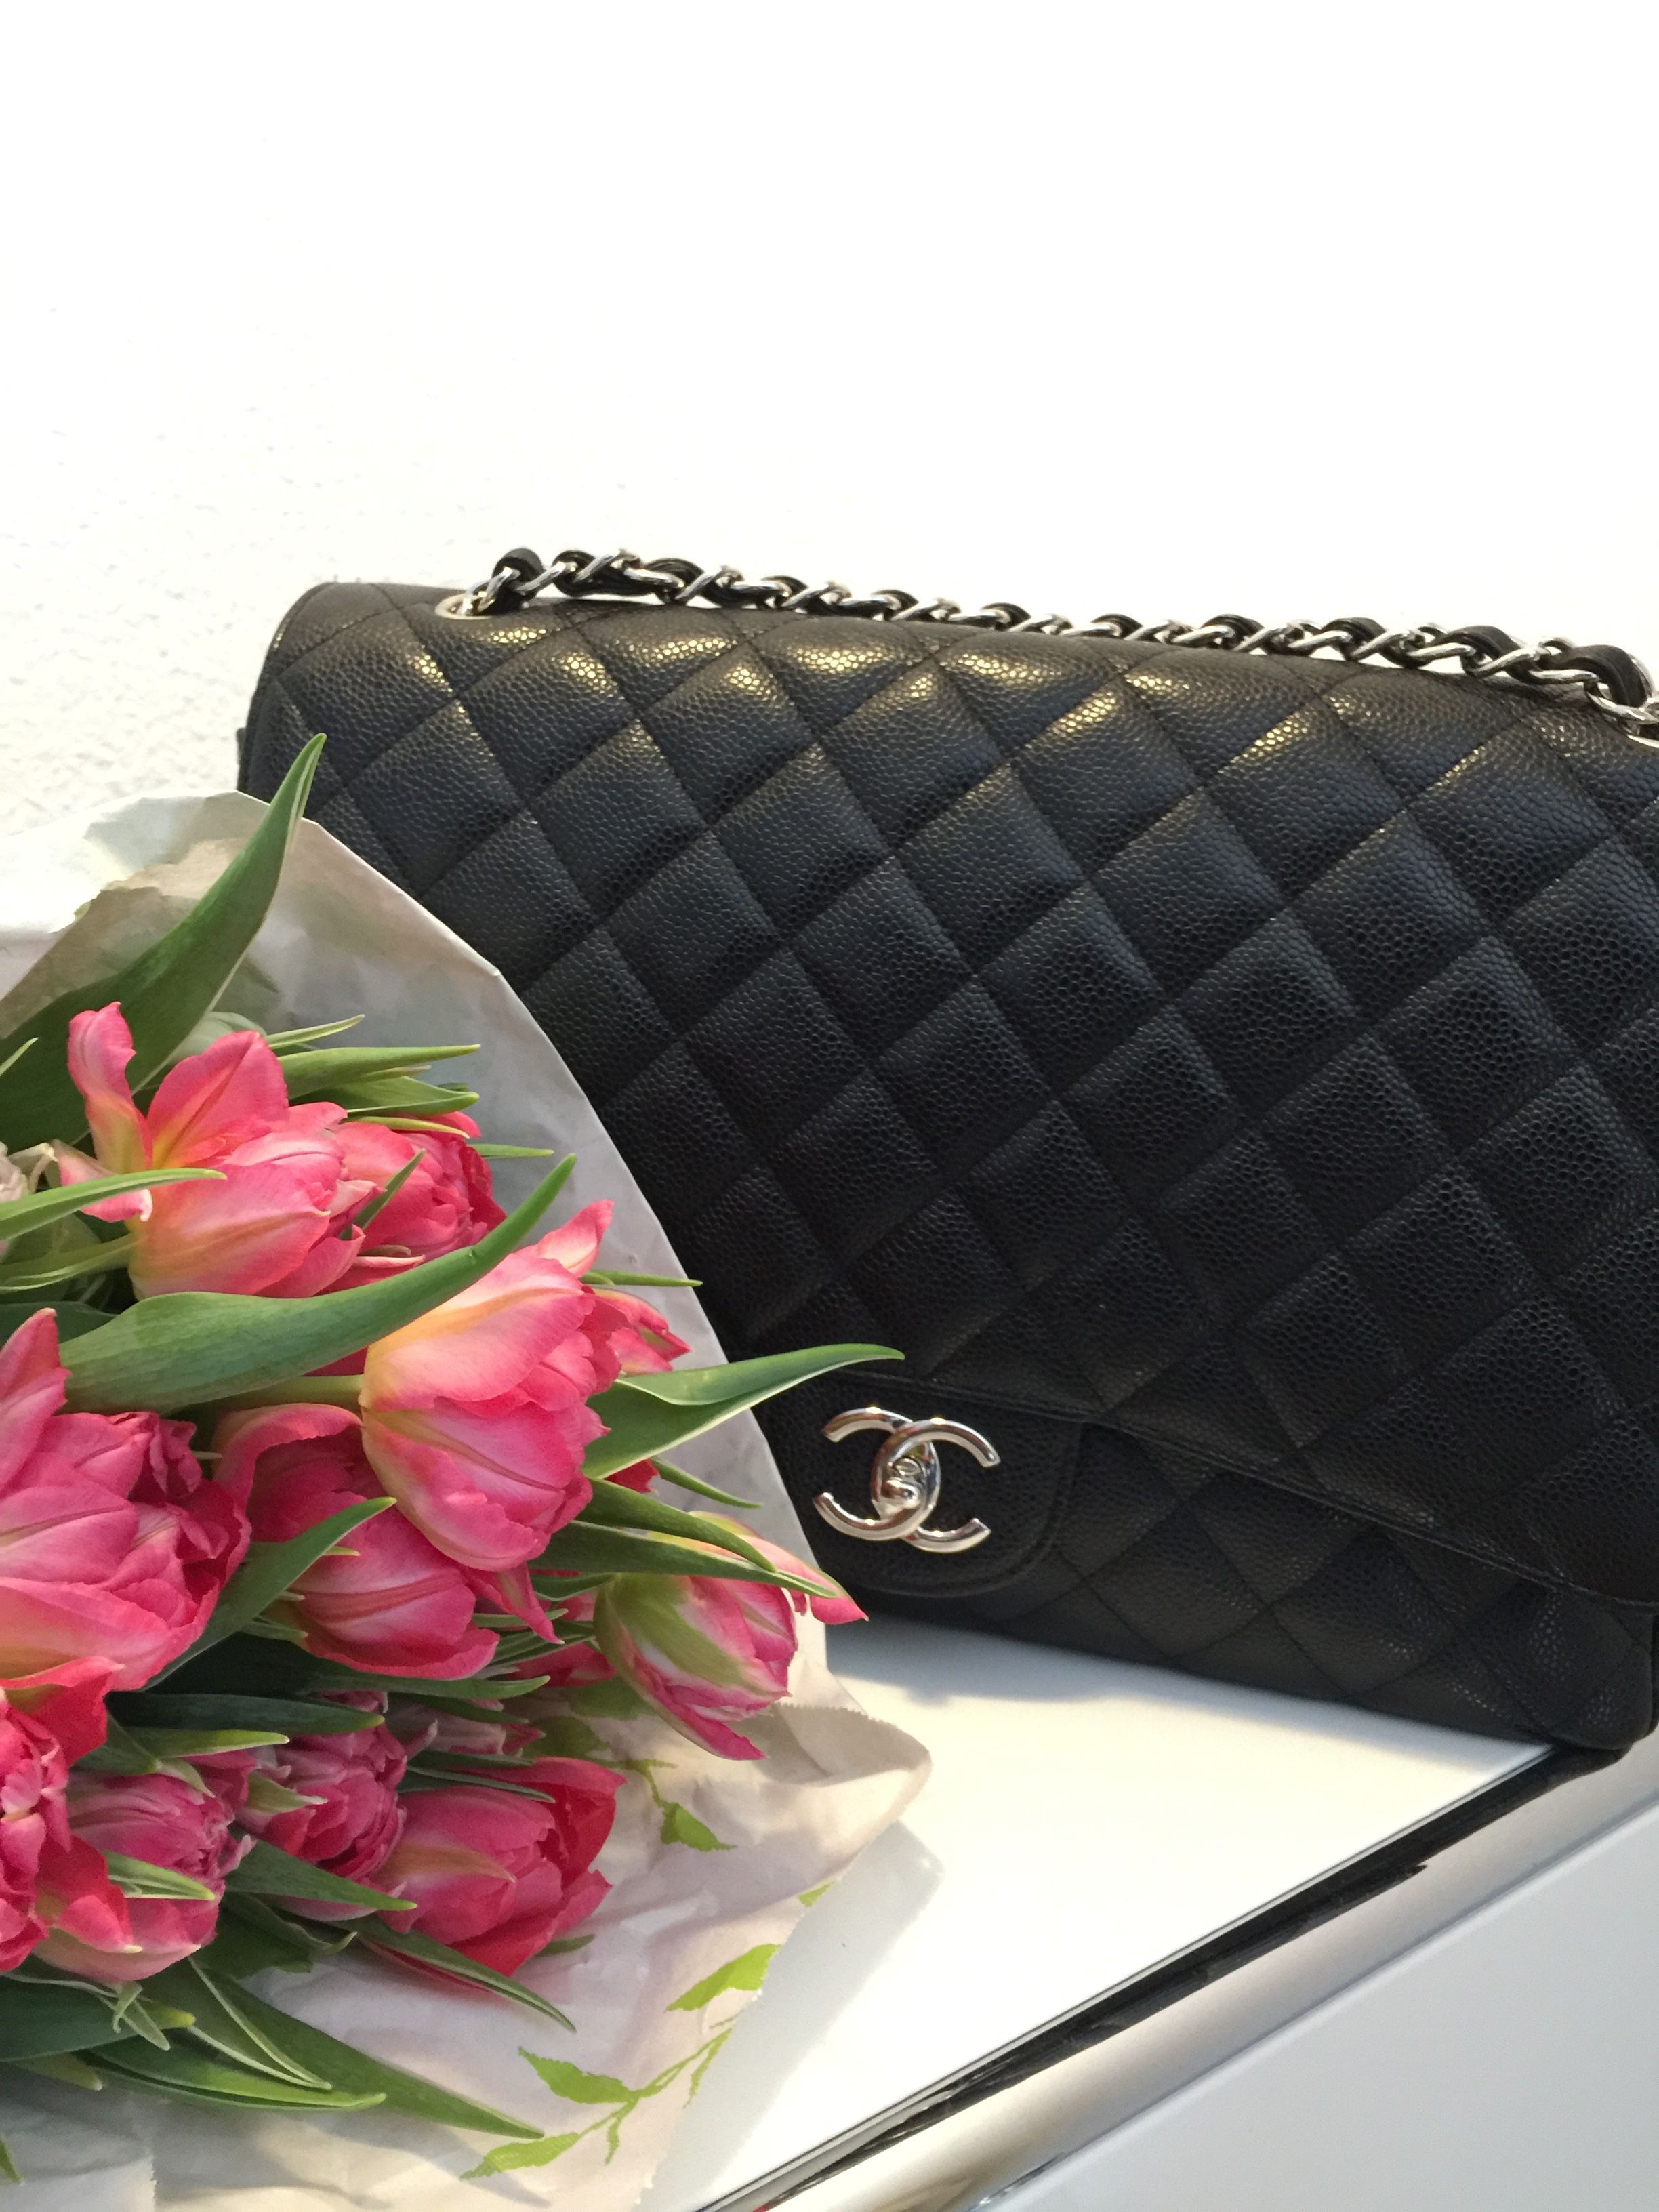 Chanel Classic Flap in black caviar leather. Maxi size for plenty of room inside.